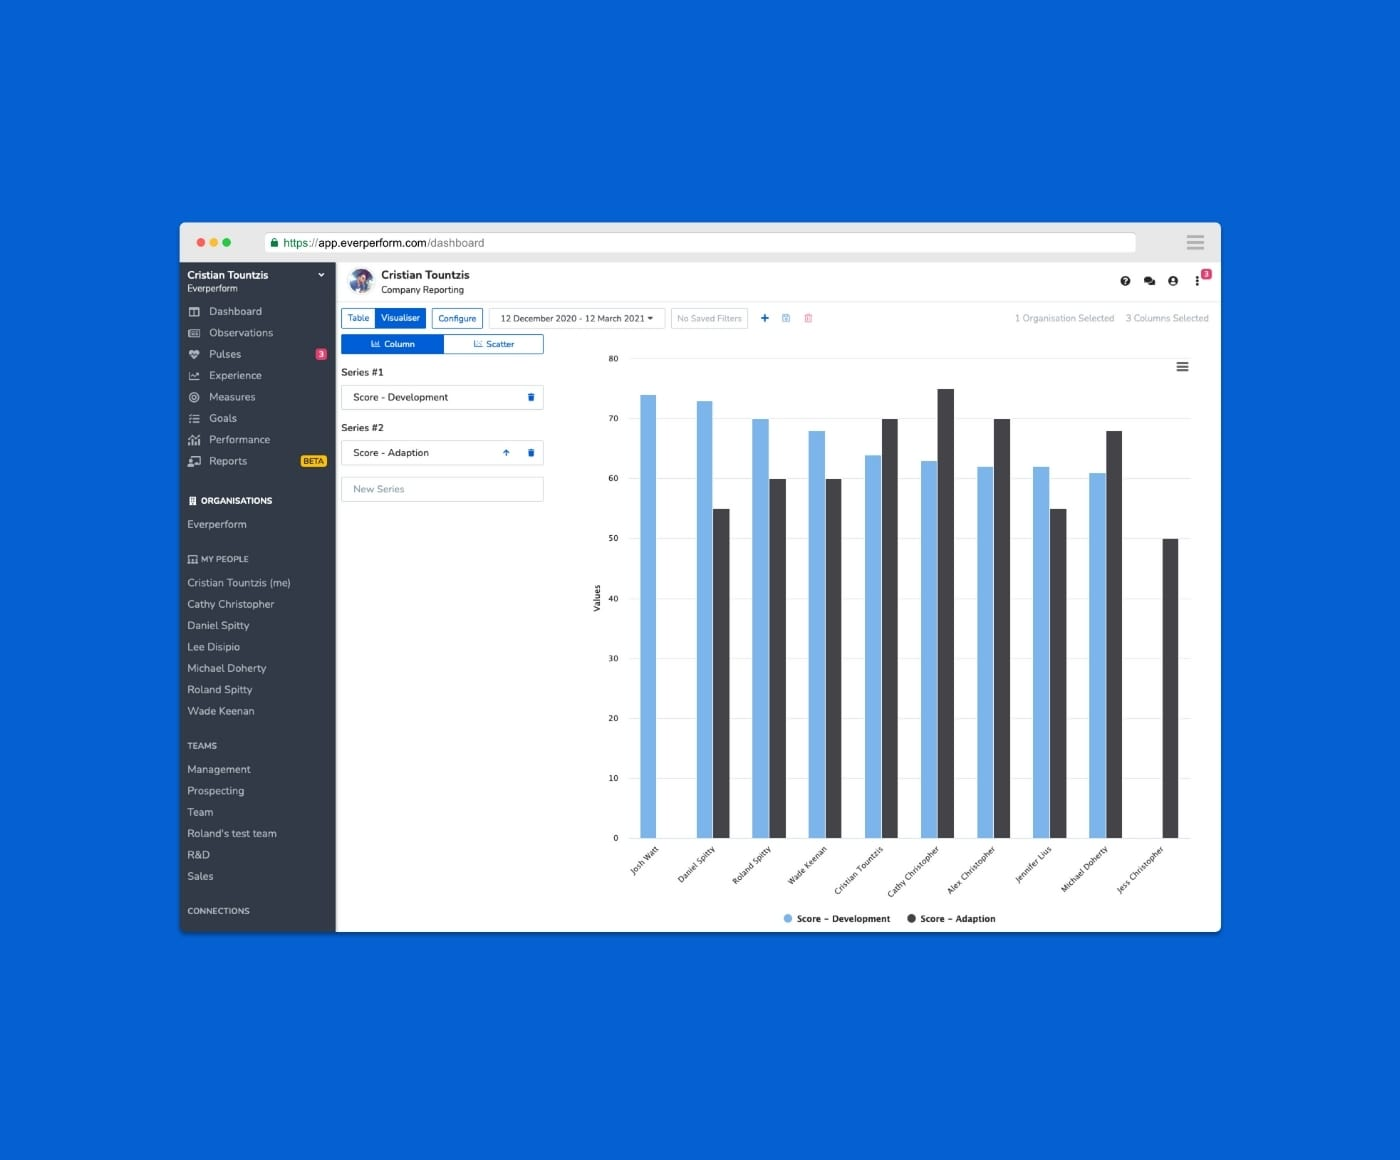 Product update: Organsiation-wide analytics and visuals